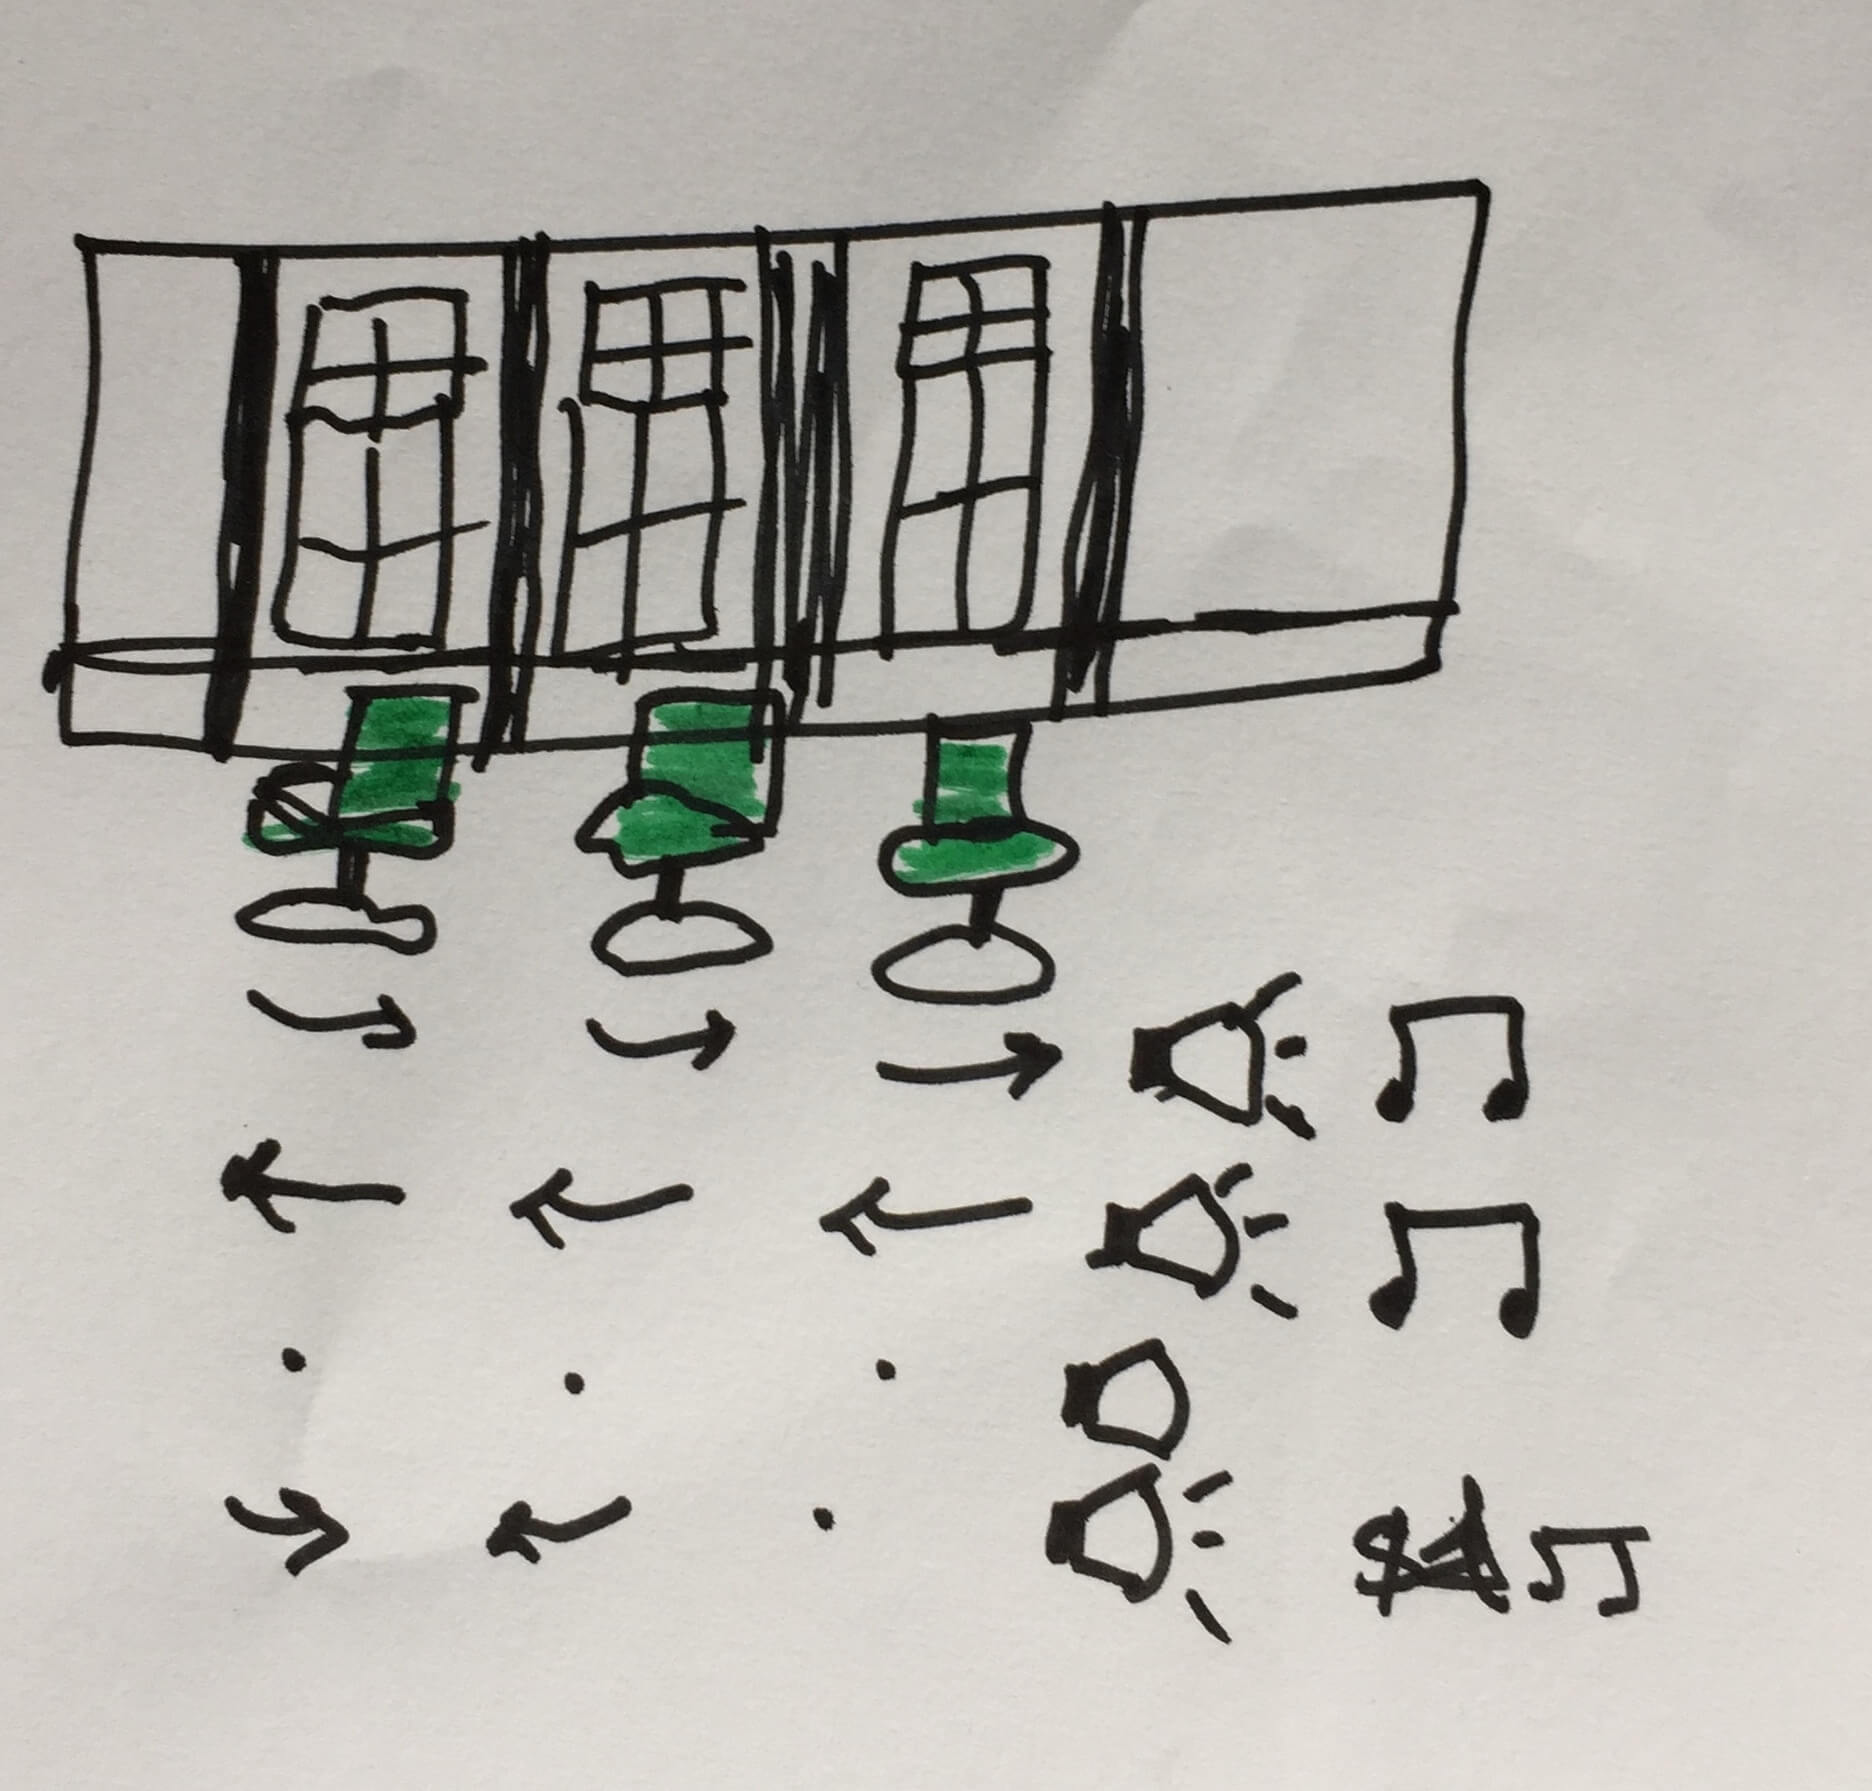 Euphonic chairs first sketch